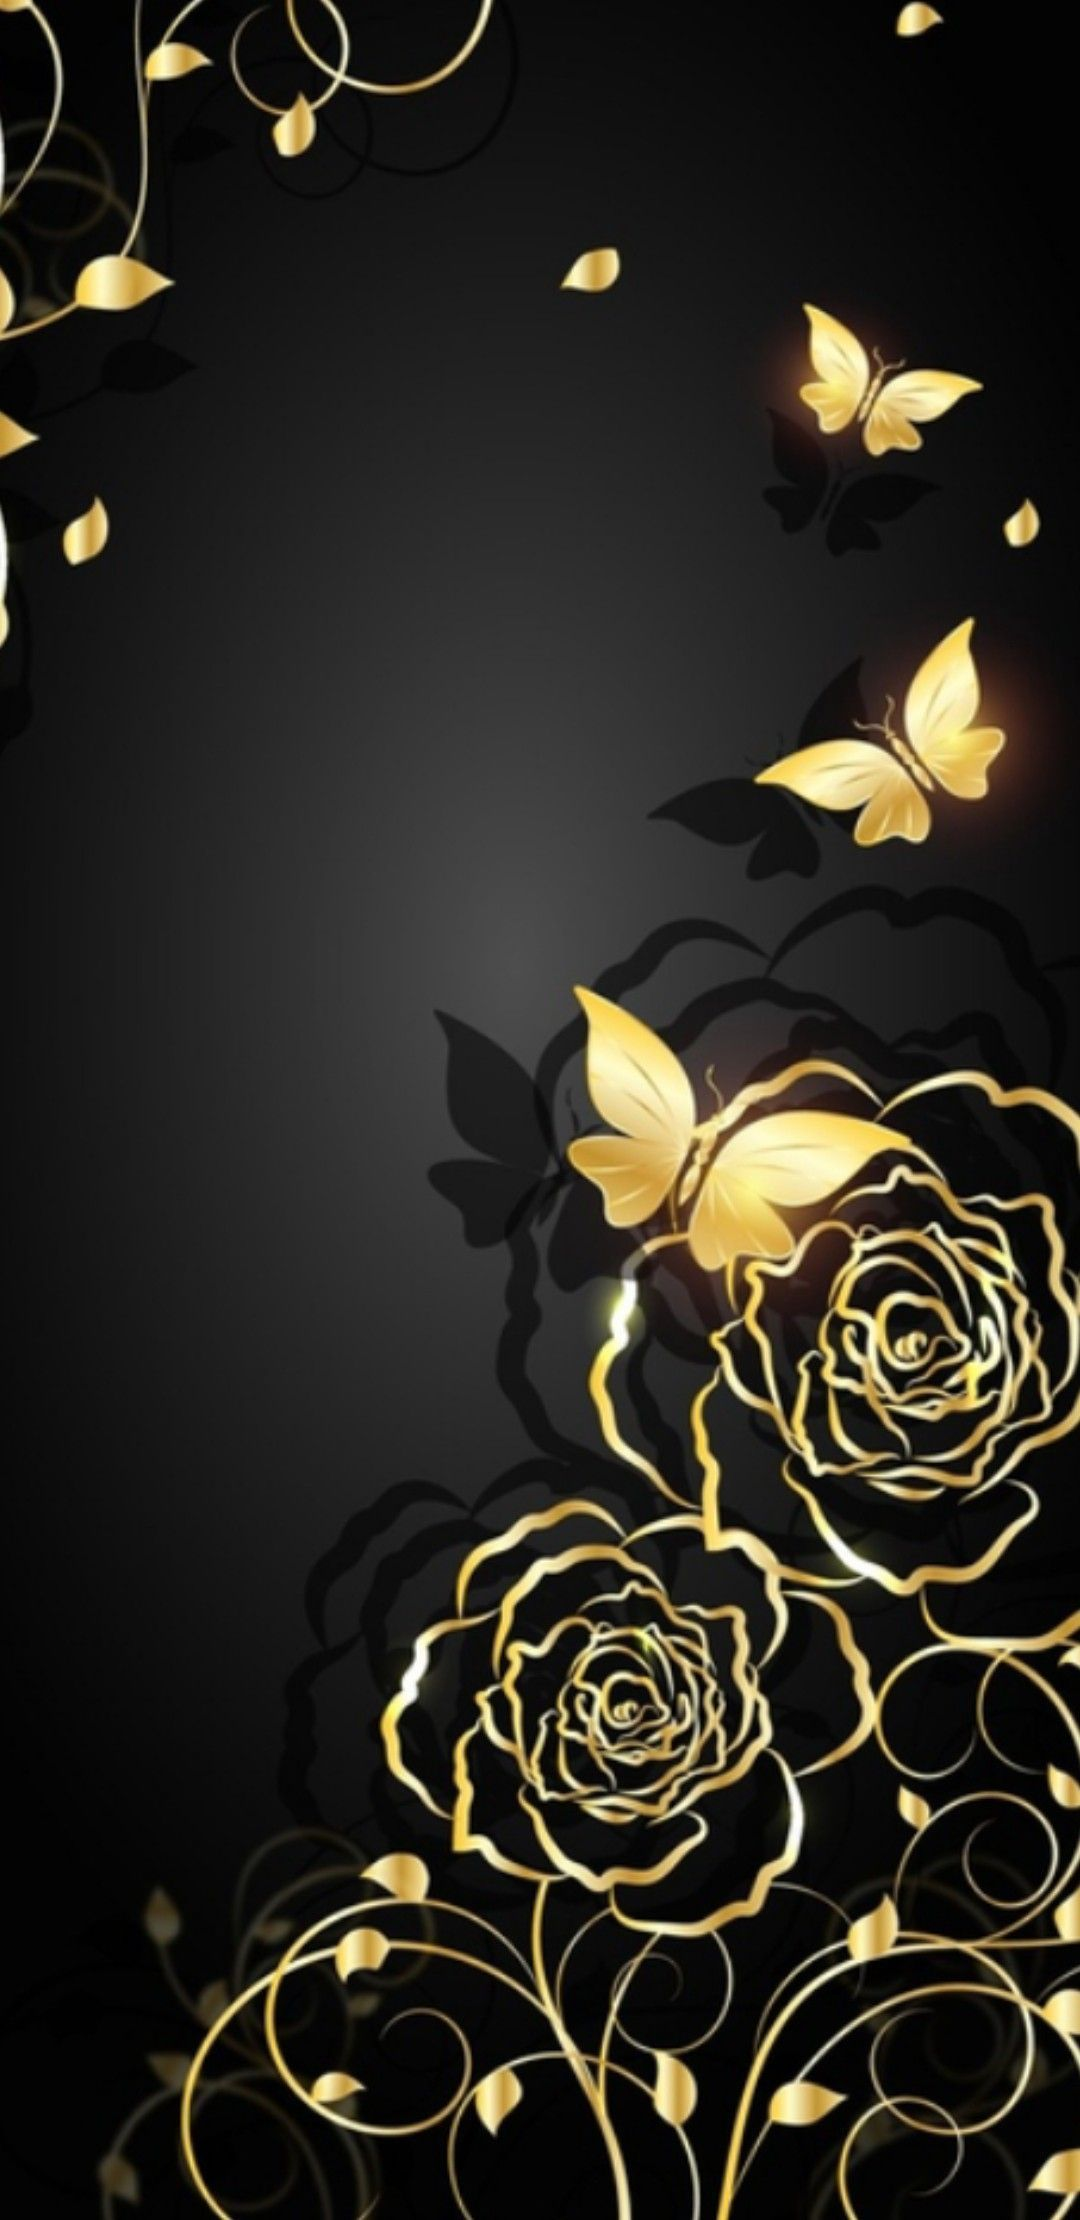 1080x2220 Black and Gold I Wallpaper Roses and Butterflies in 2019 ...